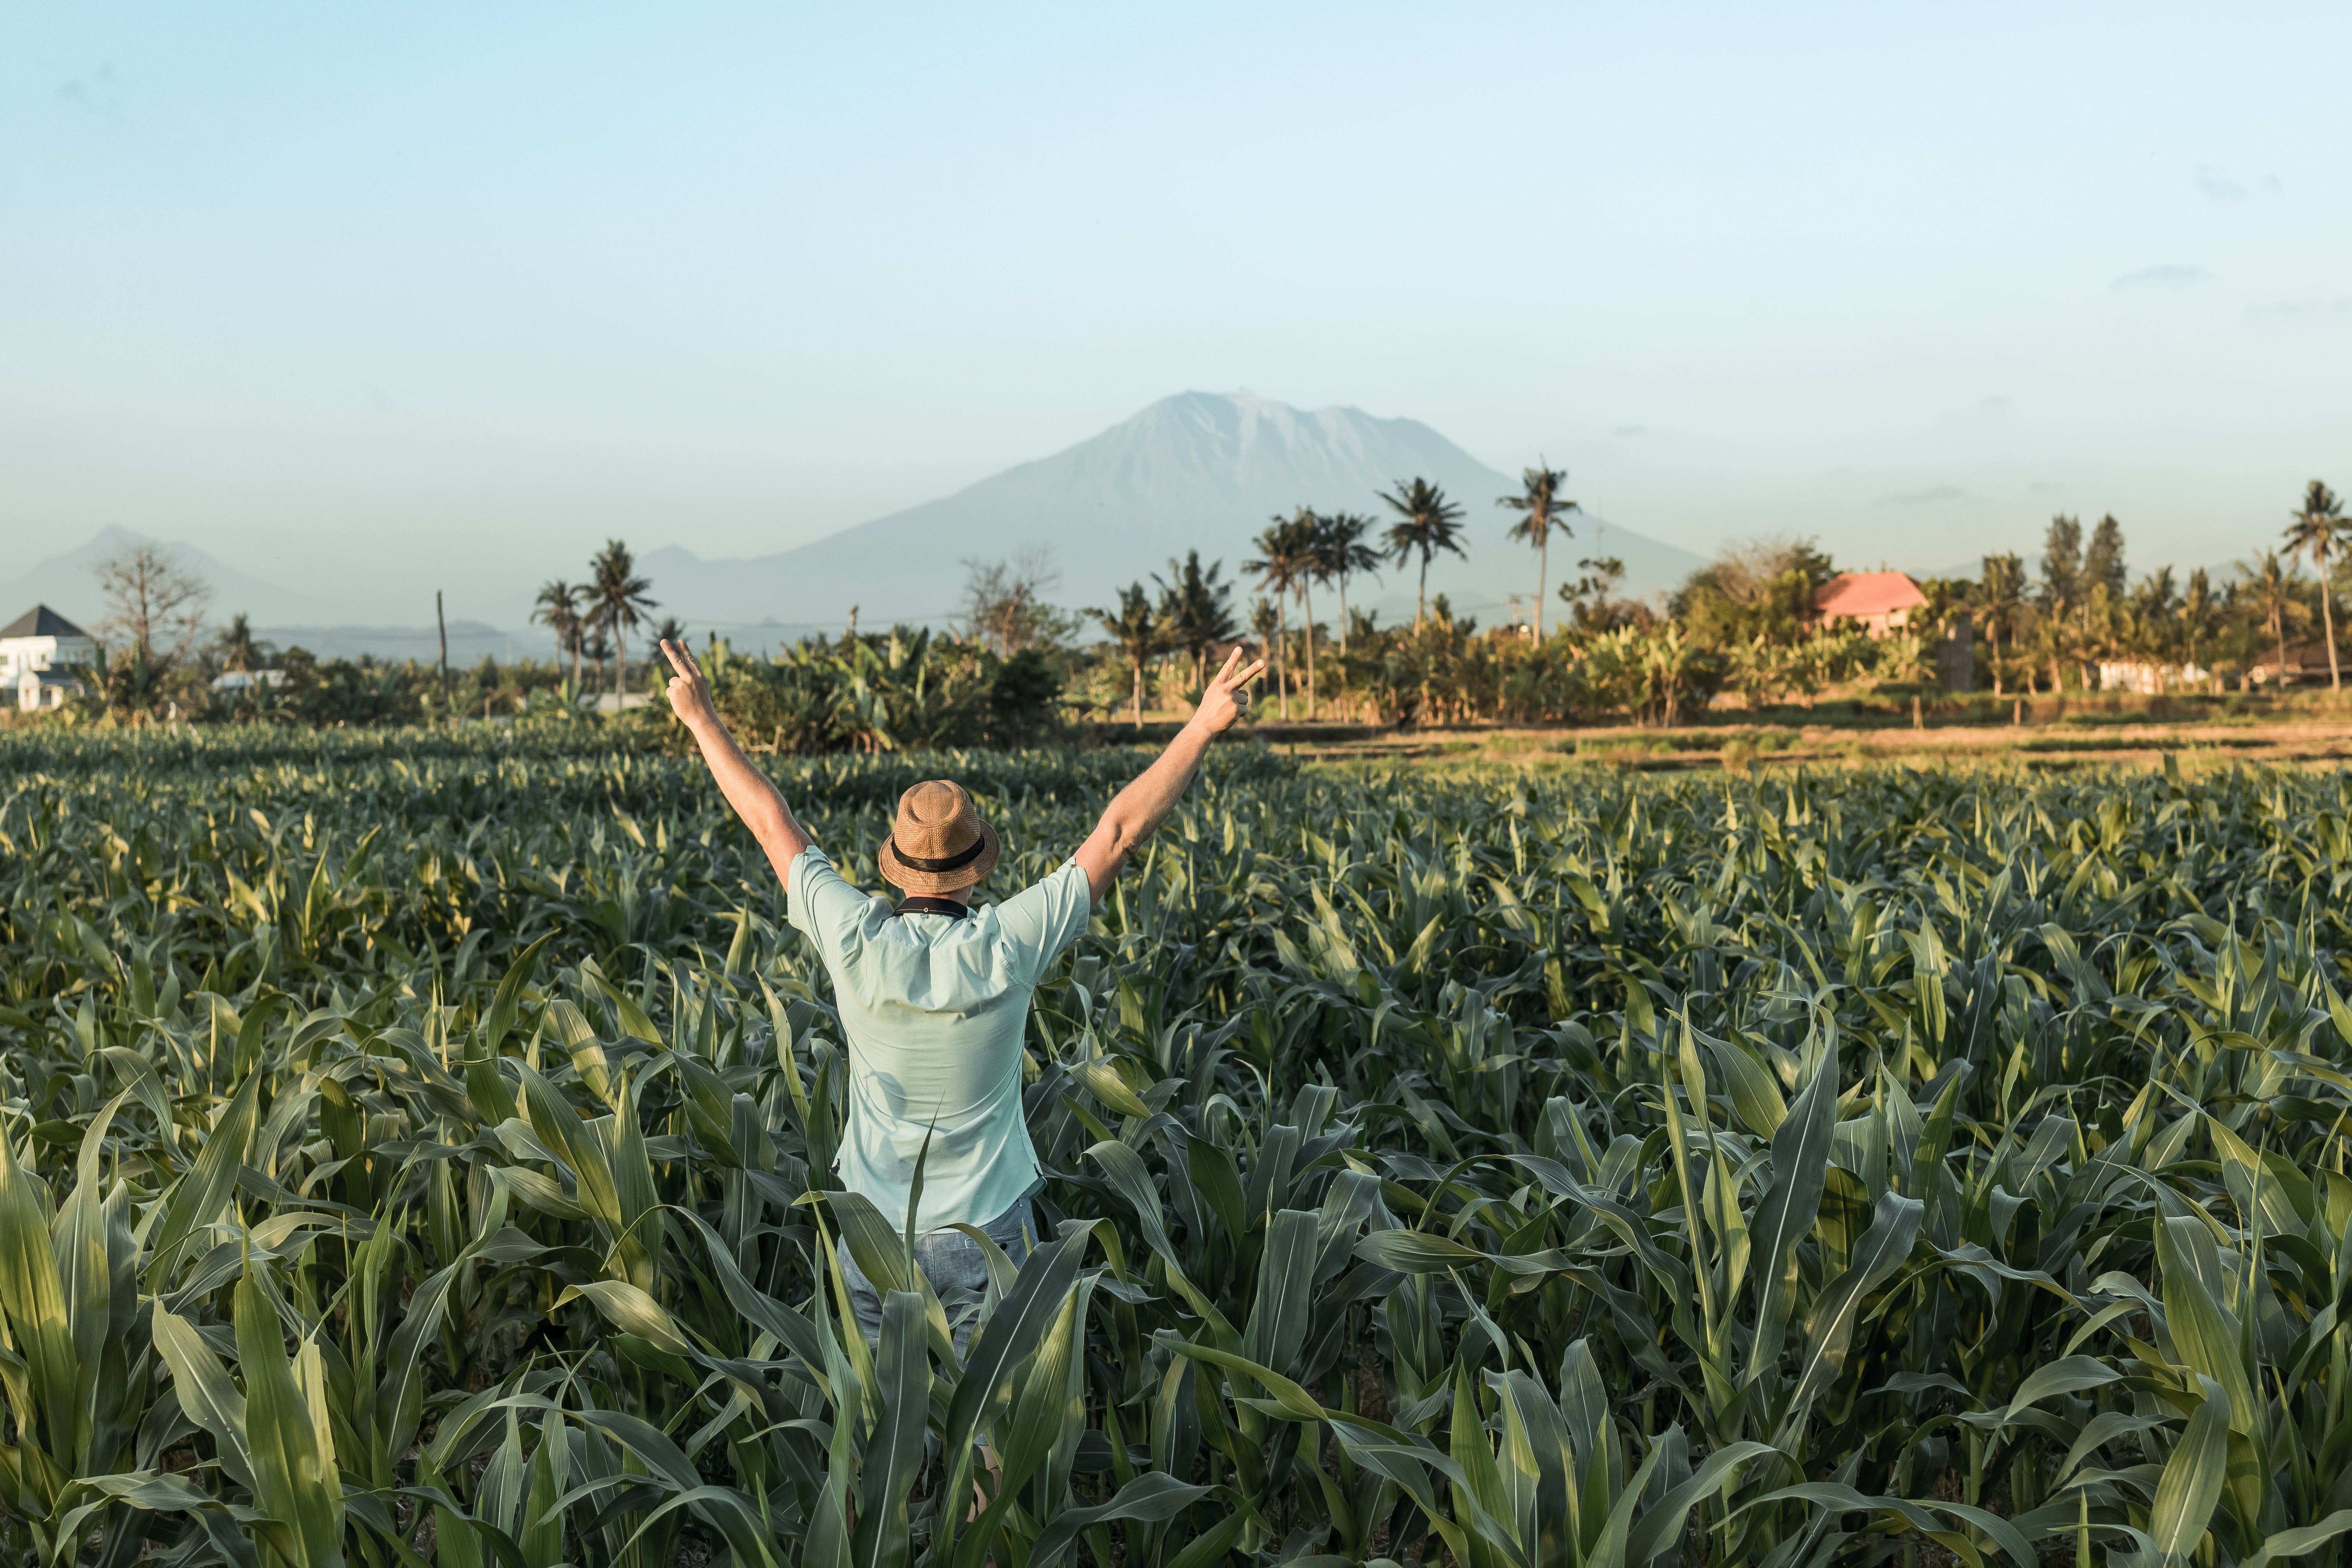 Man Standing at Middle of Cornfield